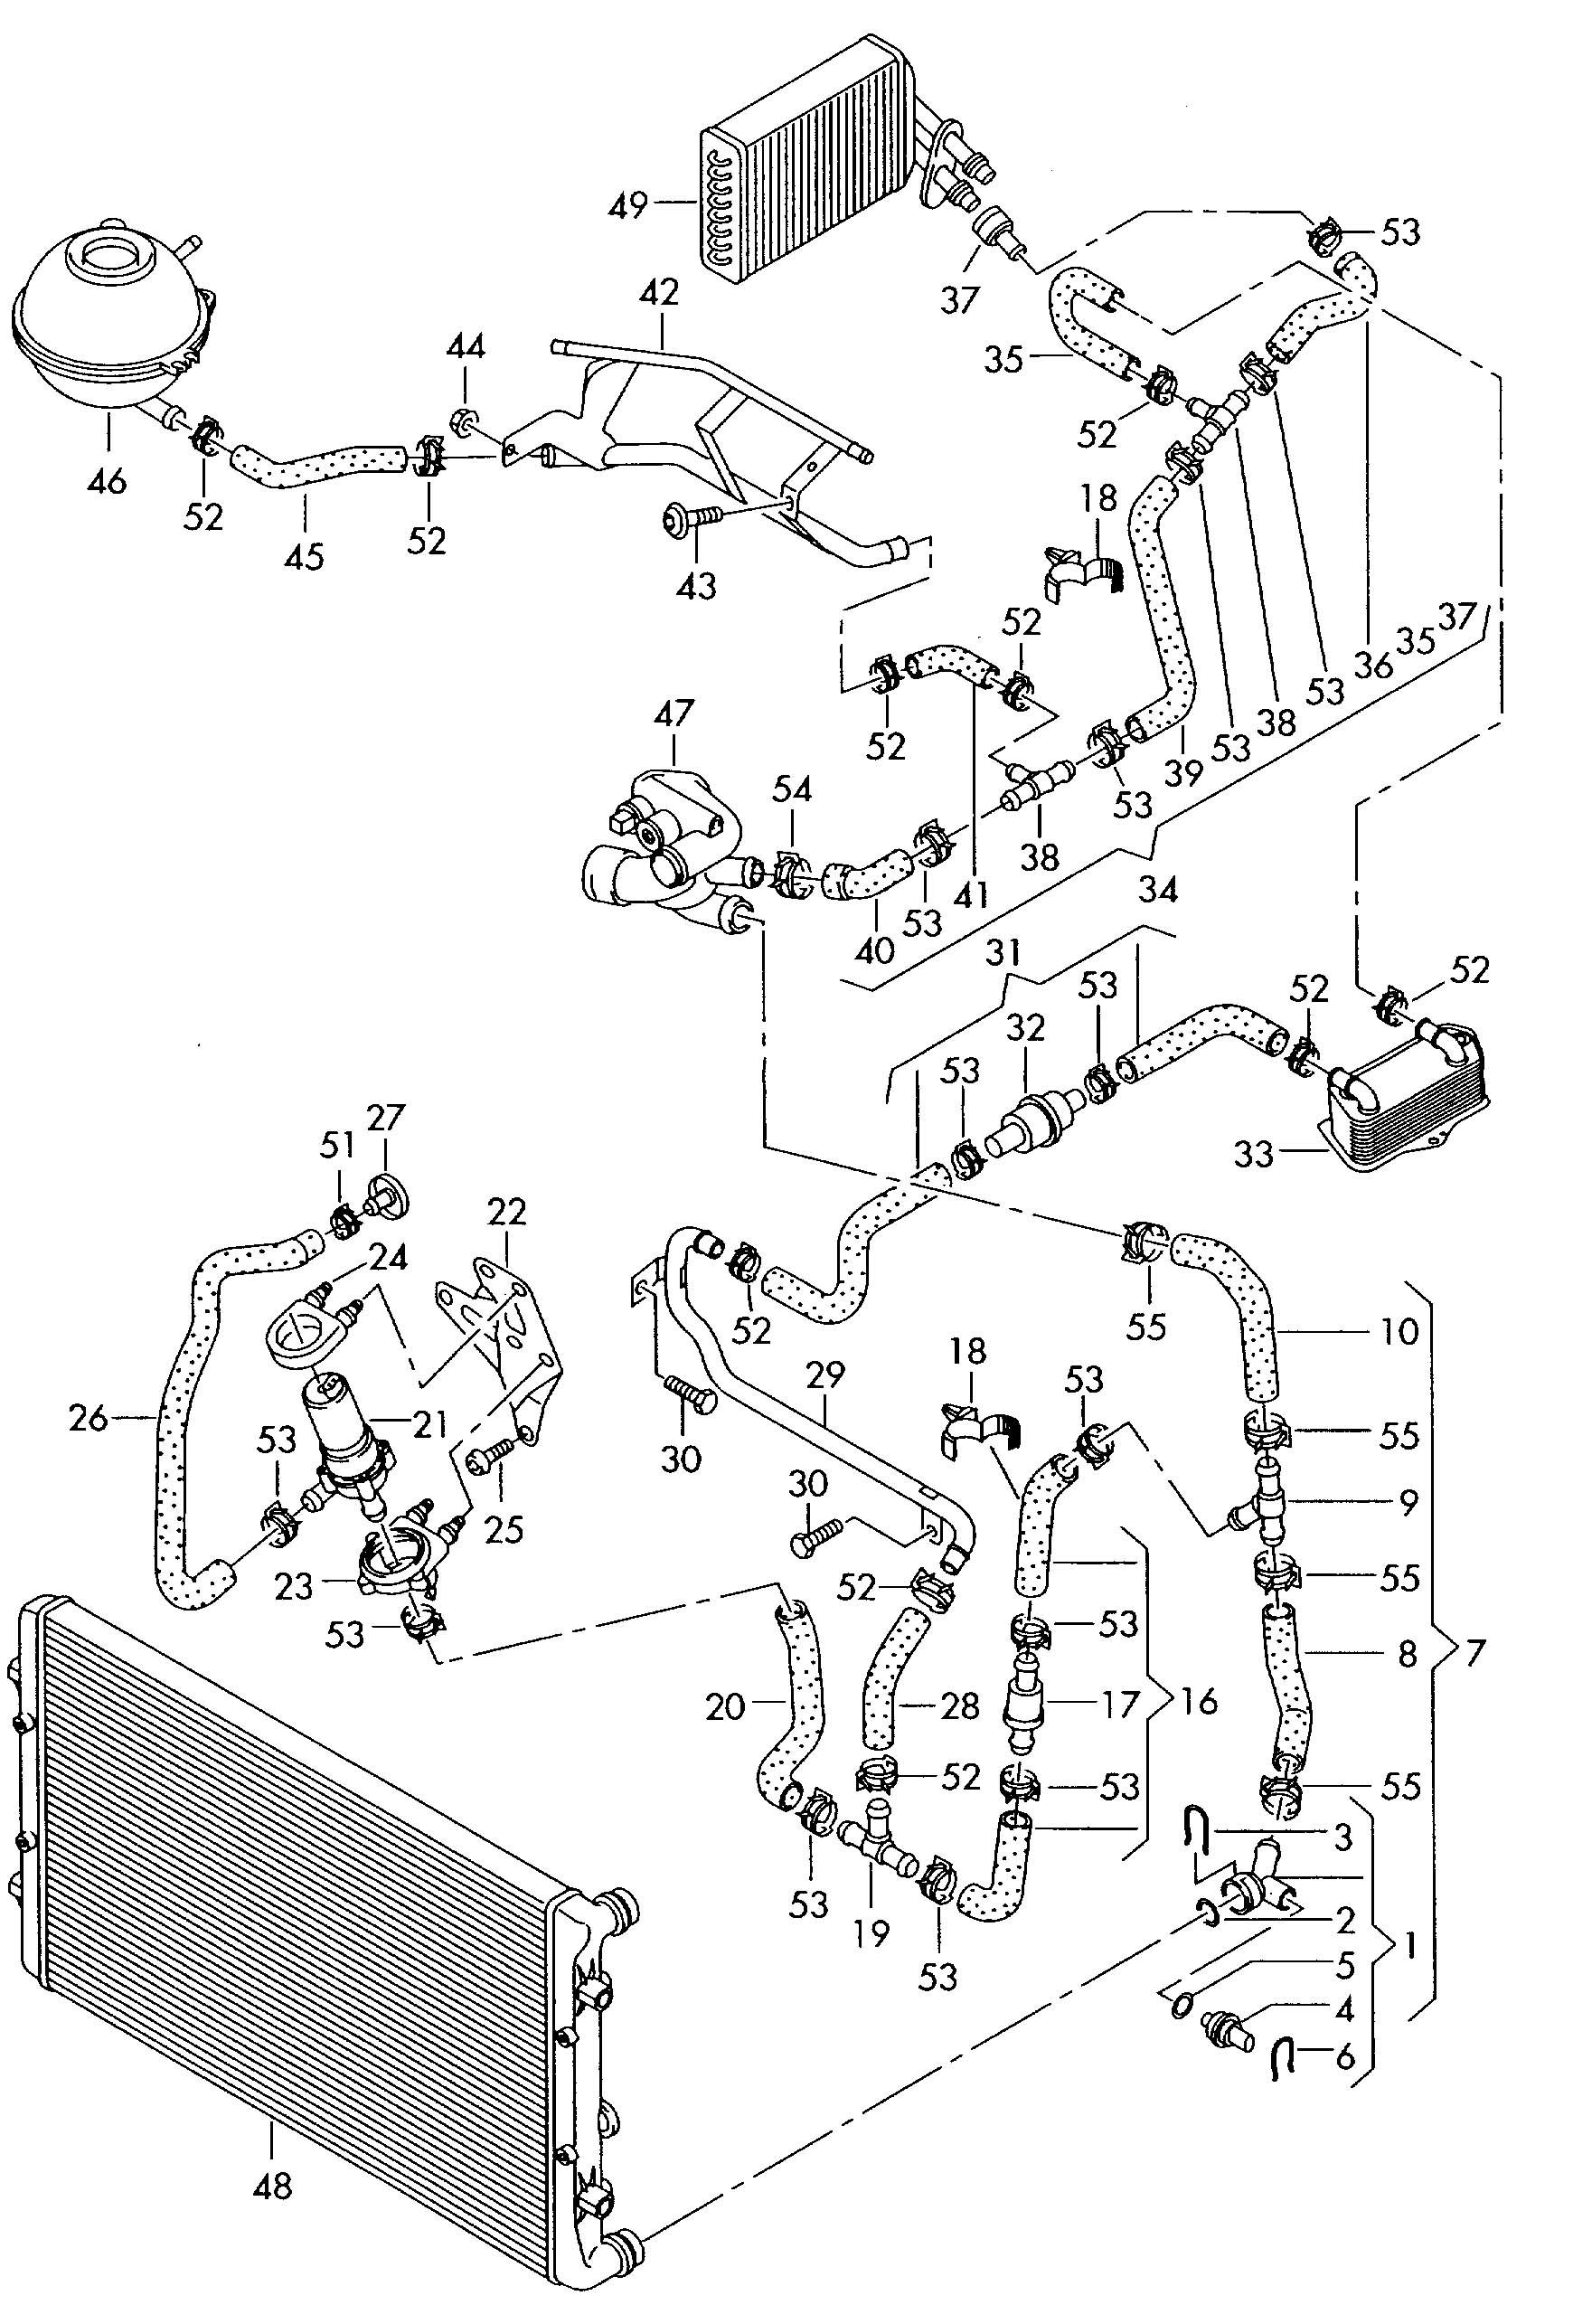 Audi A3 Cooling System Diagram Audi A3, Cars And Motorcycles, Cooling System